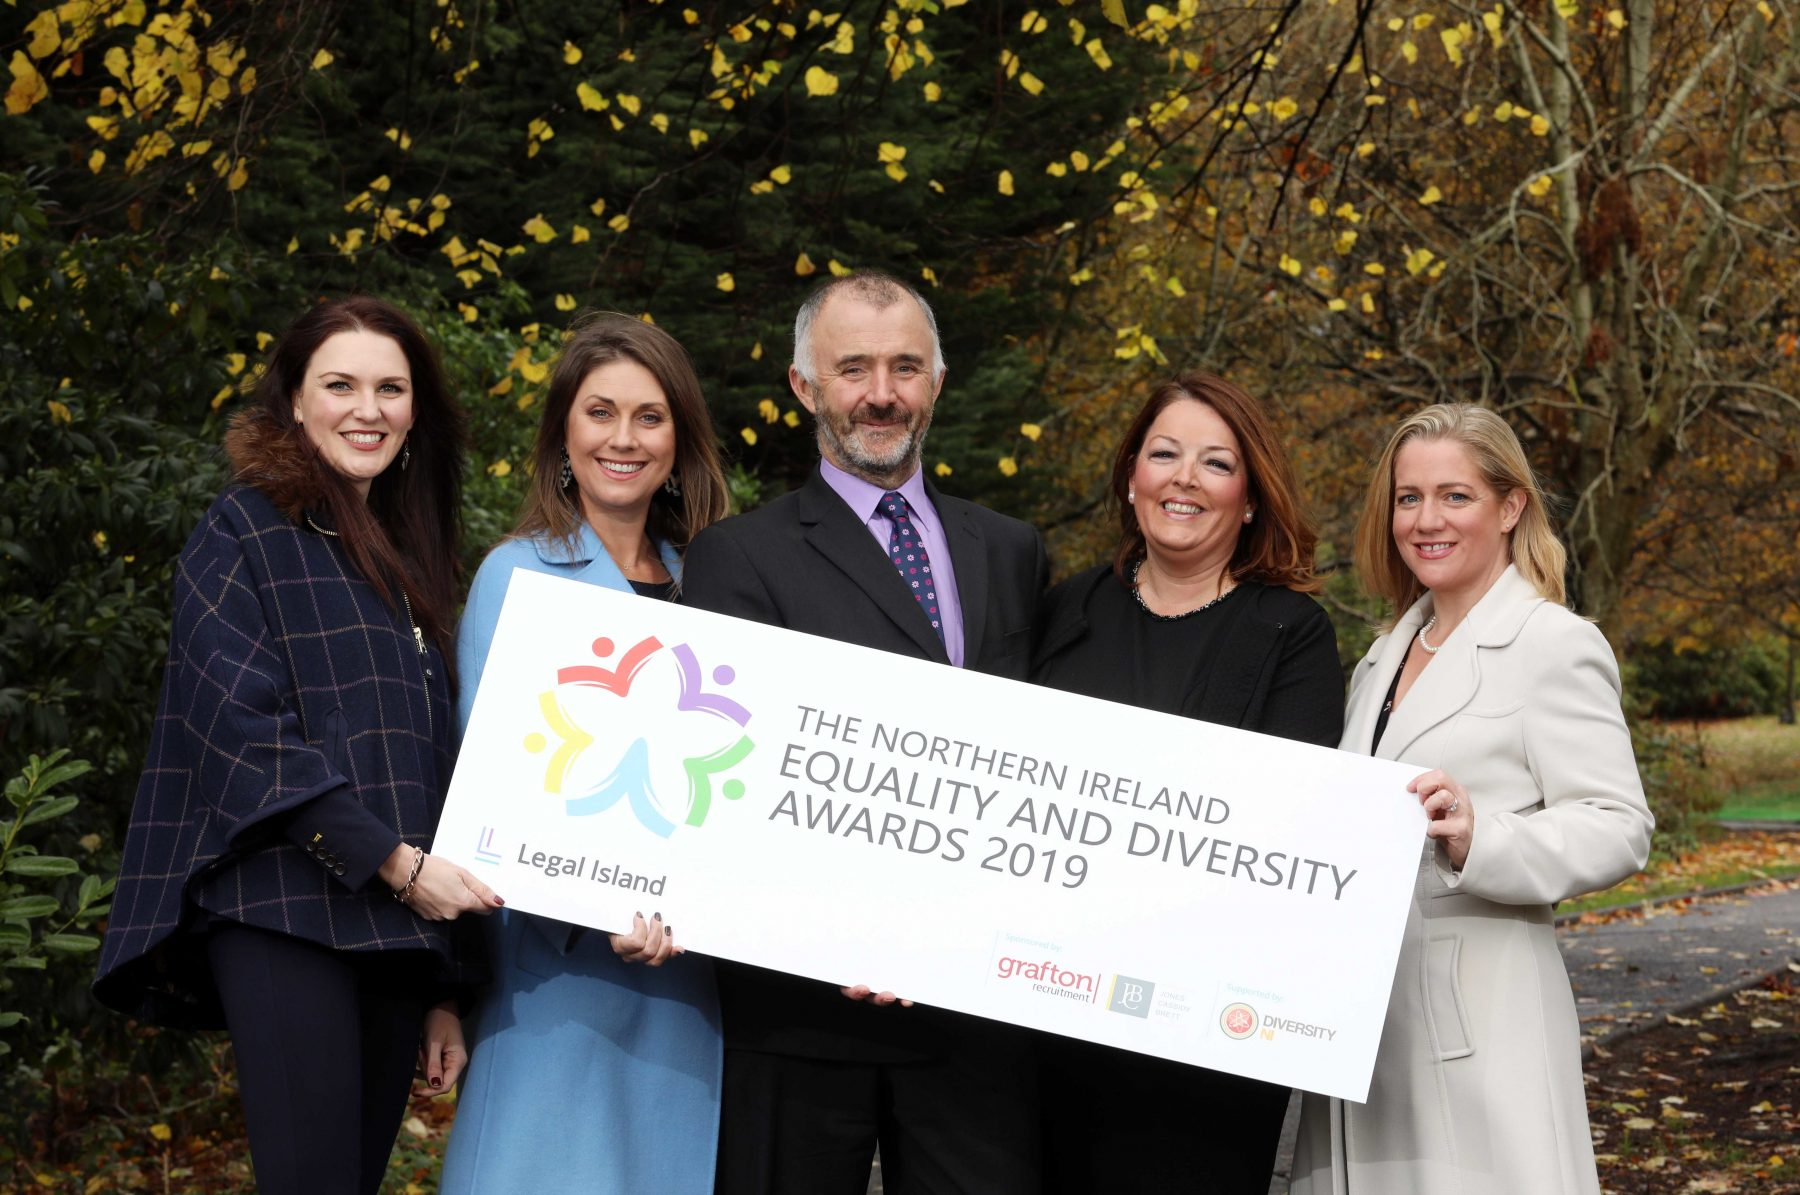 Paolina Hawthorne, Founder, Diversity NI Ltd; Sarah Travers, awards host; Barry Phillips, Chair of Legal-Island, organisers of the awards; Tina McKenzie, CEO of Grafton Recruitment Ireland; and Ciara Fulton, Senior Partner, Jones Cassidy Brett.